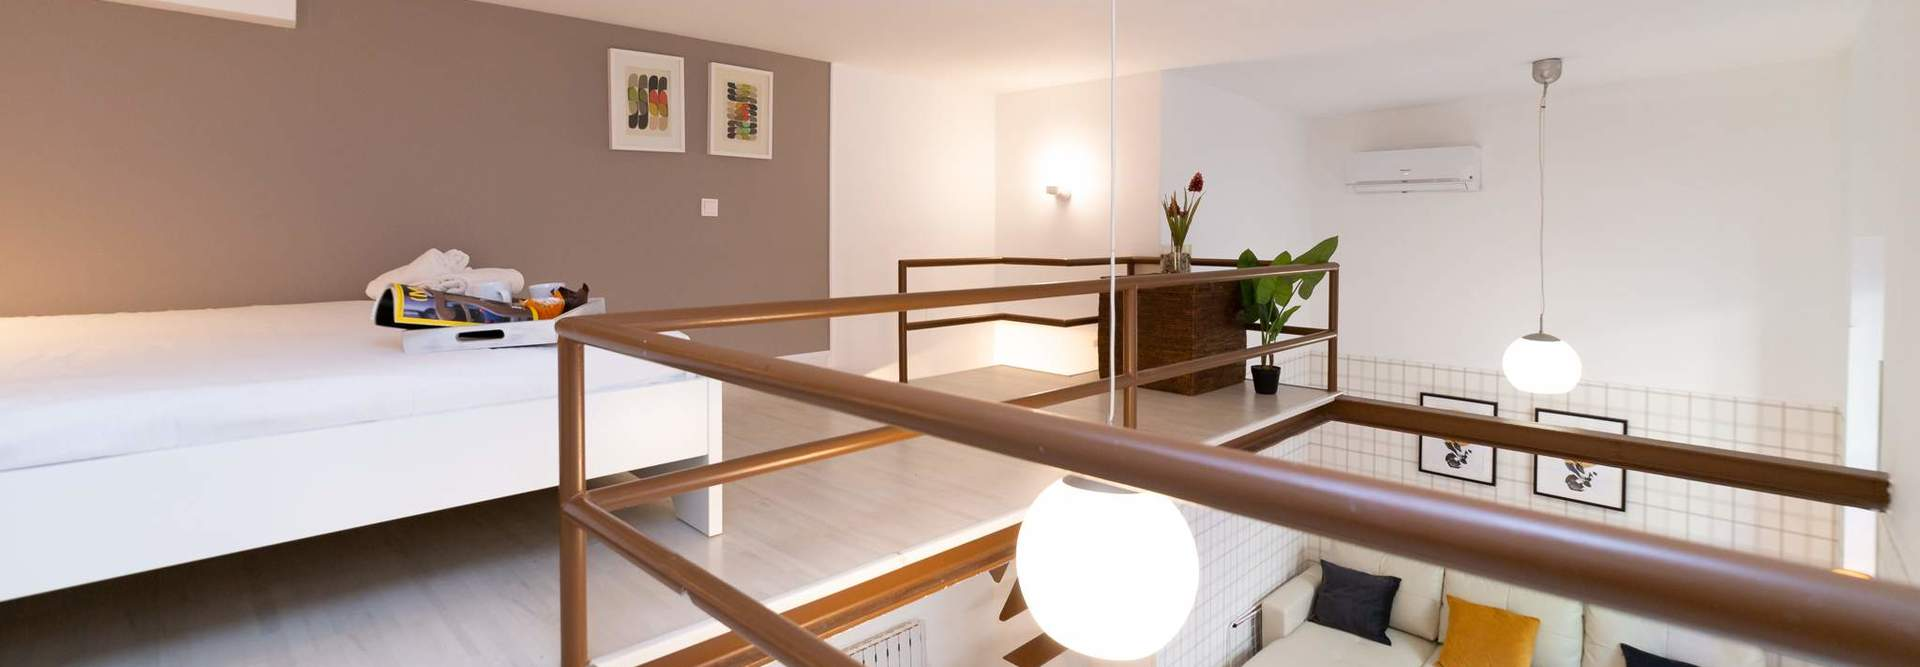 Home alquiler apartamentos madrid mad4rent 10